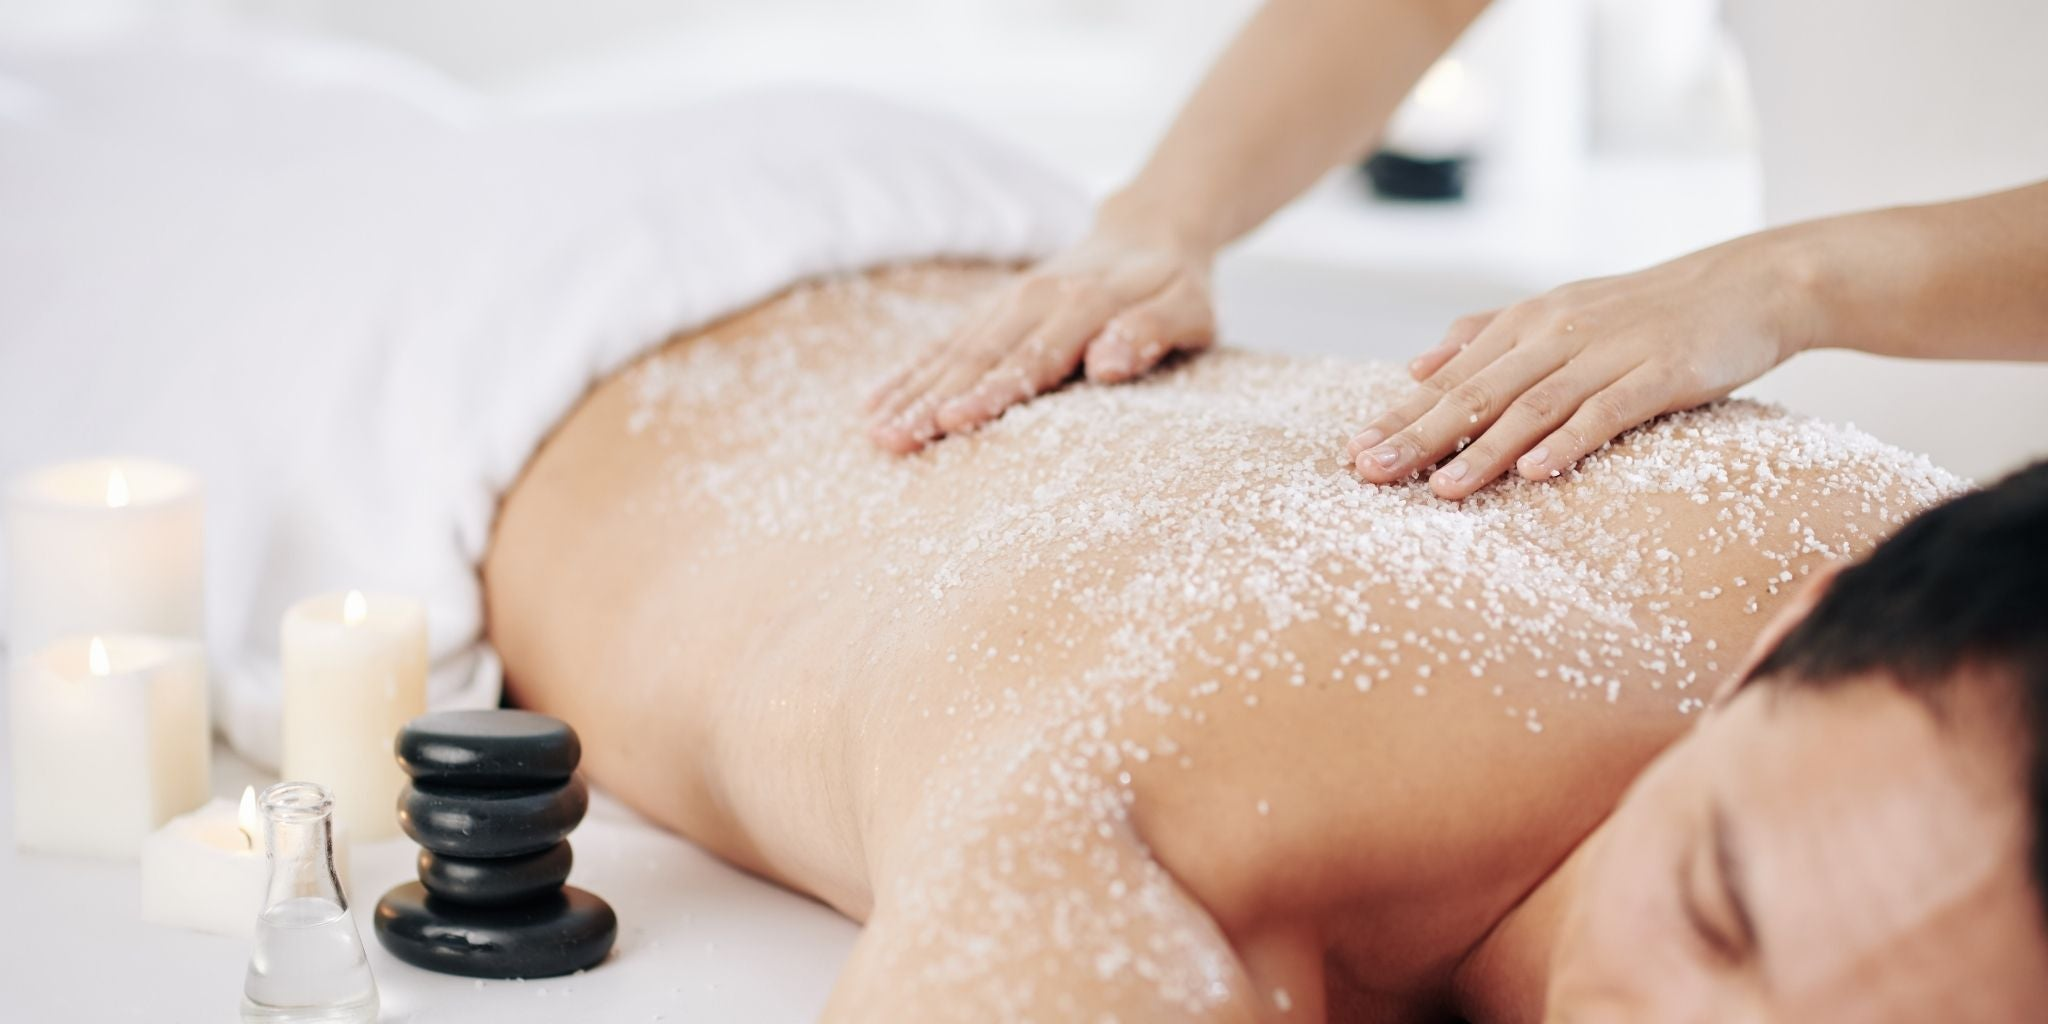 Body Care Tips: how often should you exfoliate your body?